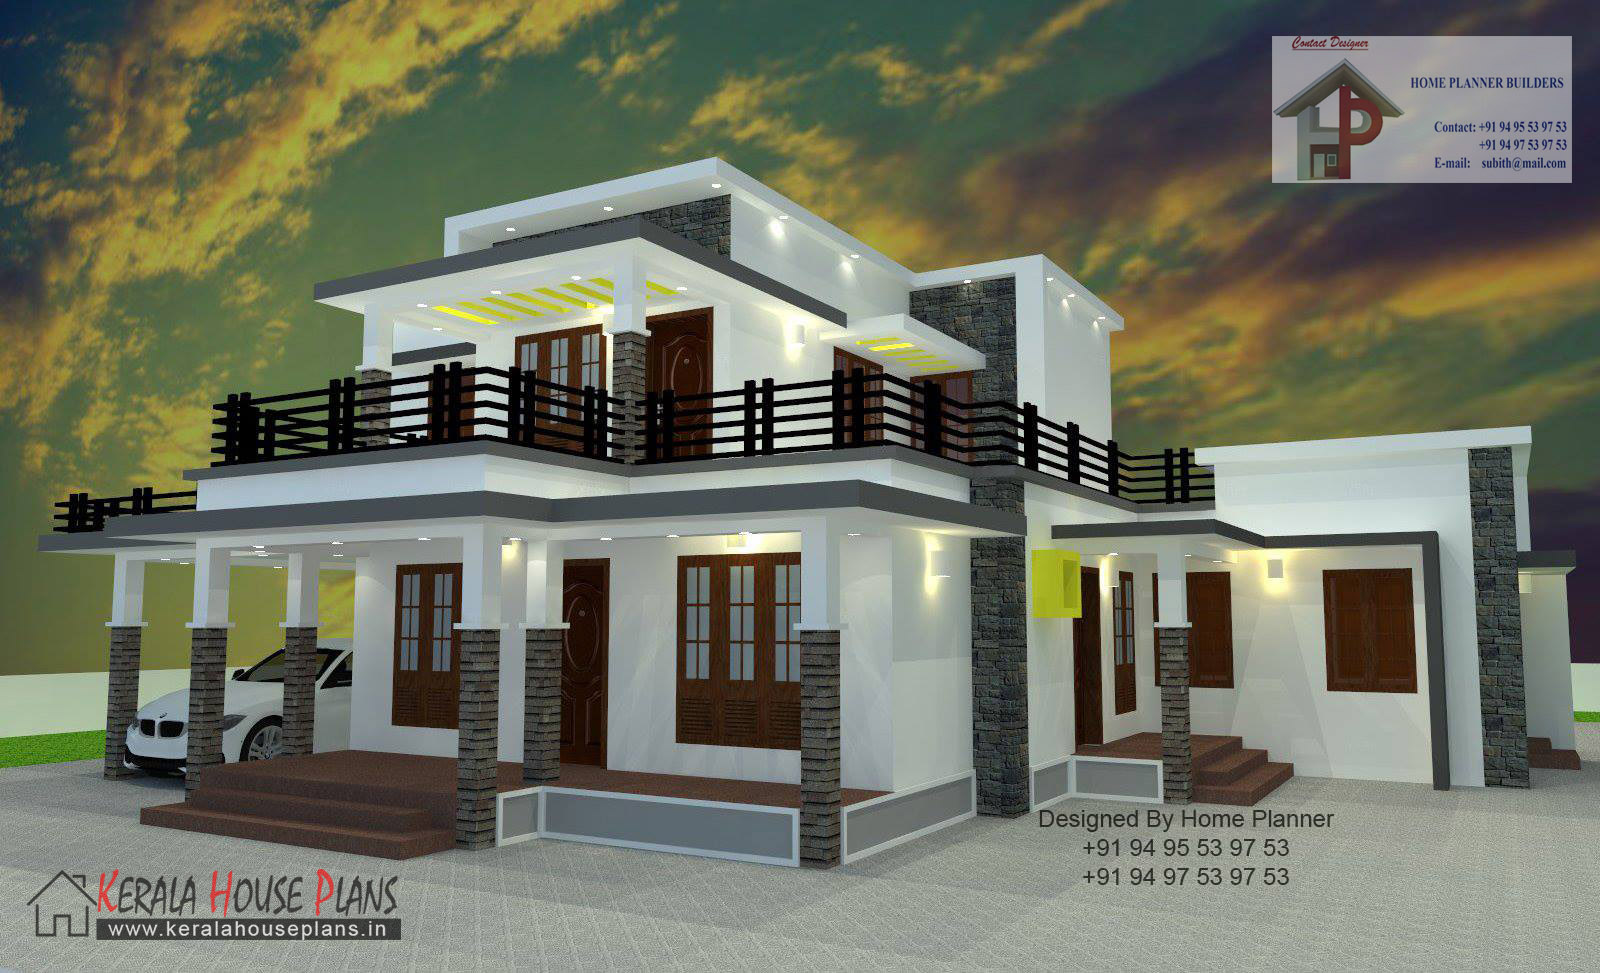 2000 sqft box type house kerala house plans designs for House plans and designs